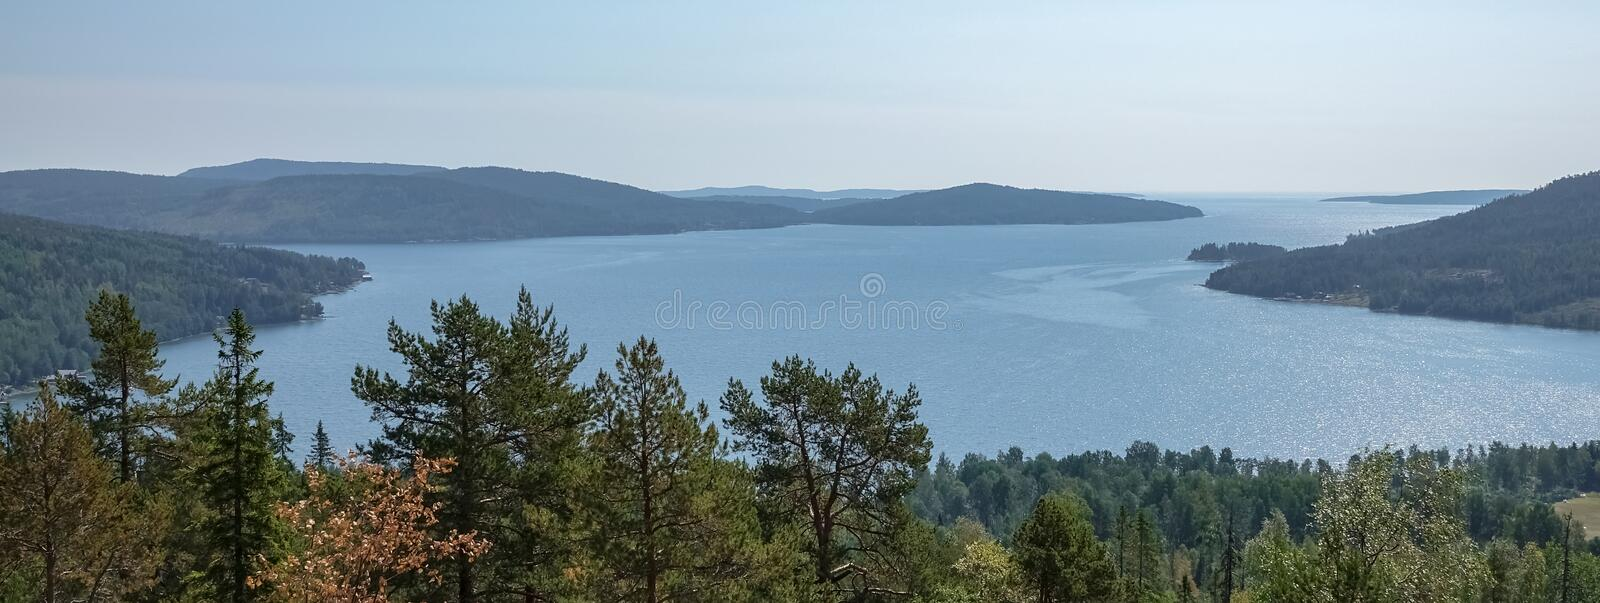 Beautiful view of archipelago, mountains, forest and sea. Skule. Mountain, high coast in northern Sweden royalty free stock photography